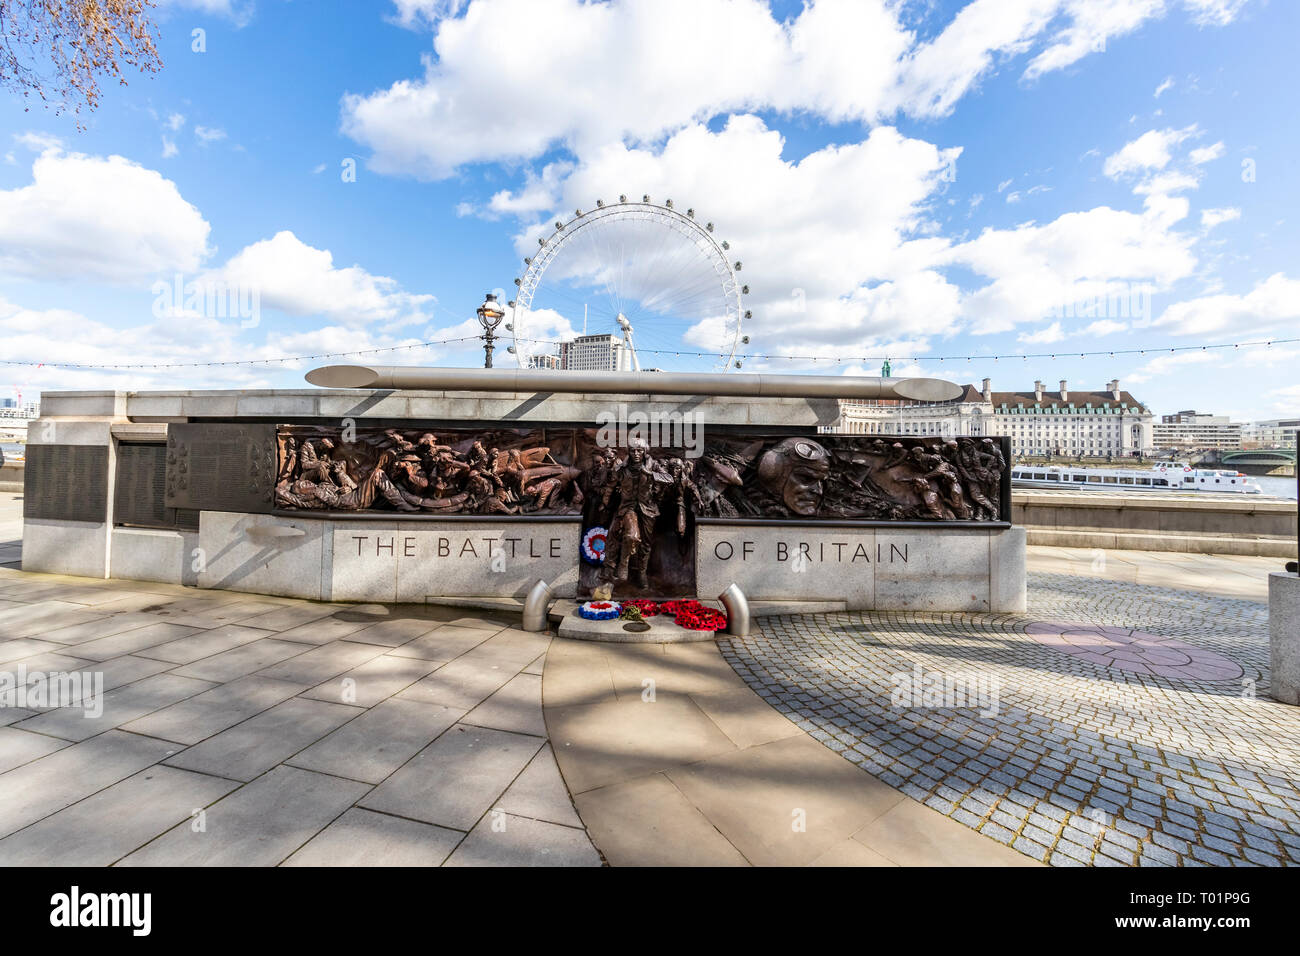 The Battle of Britain Memorial on Victoria Embankment, Westminster, London commemorates the RAF of WW11 - Stock Image